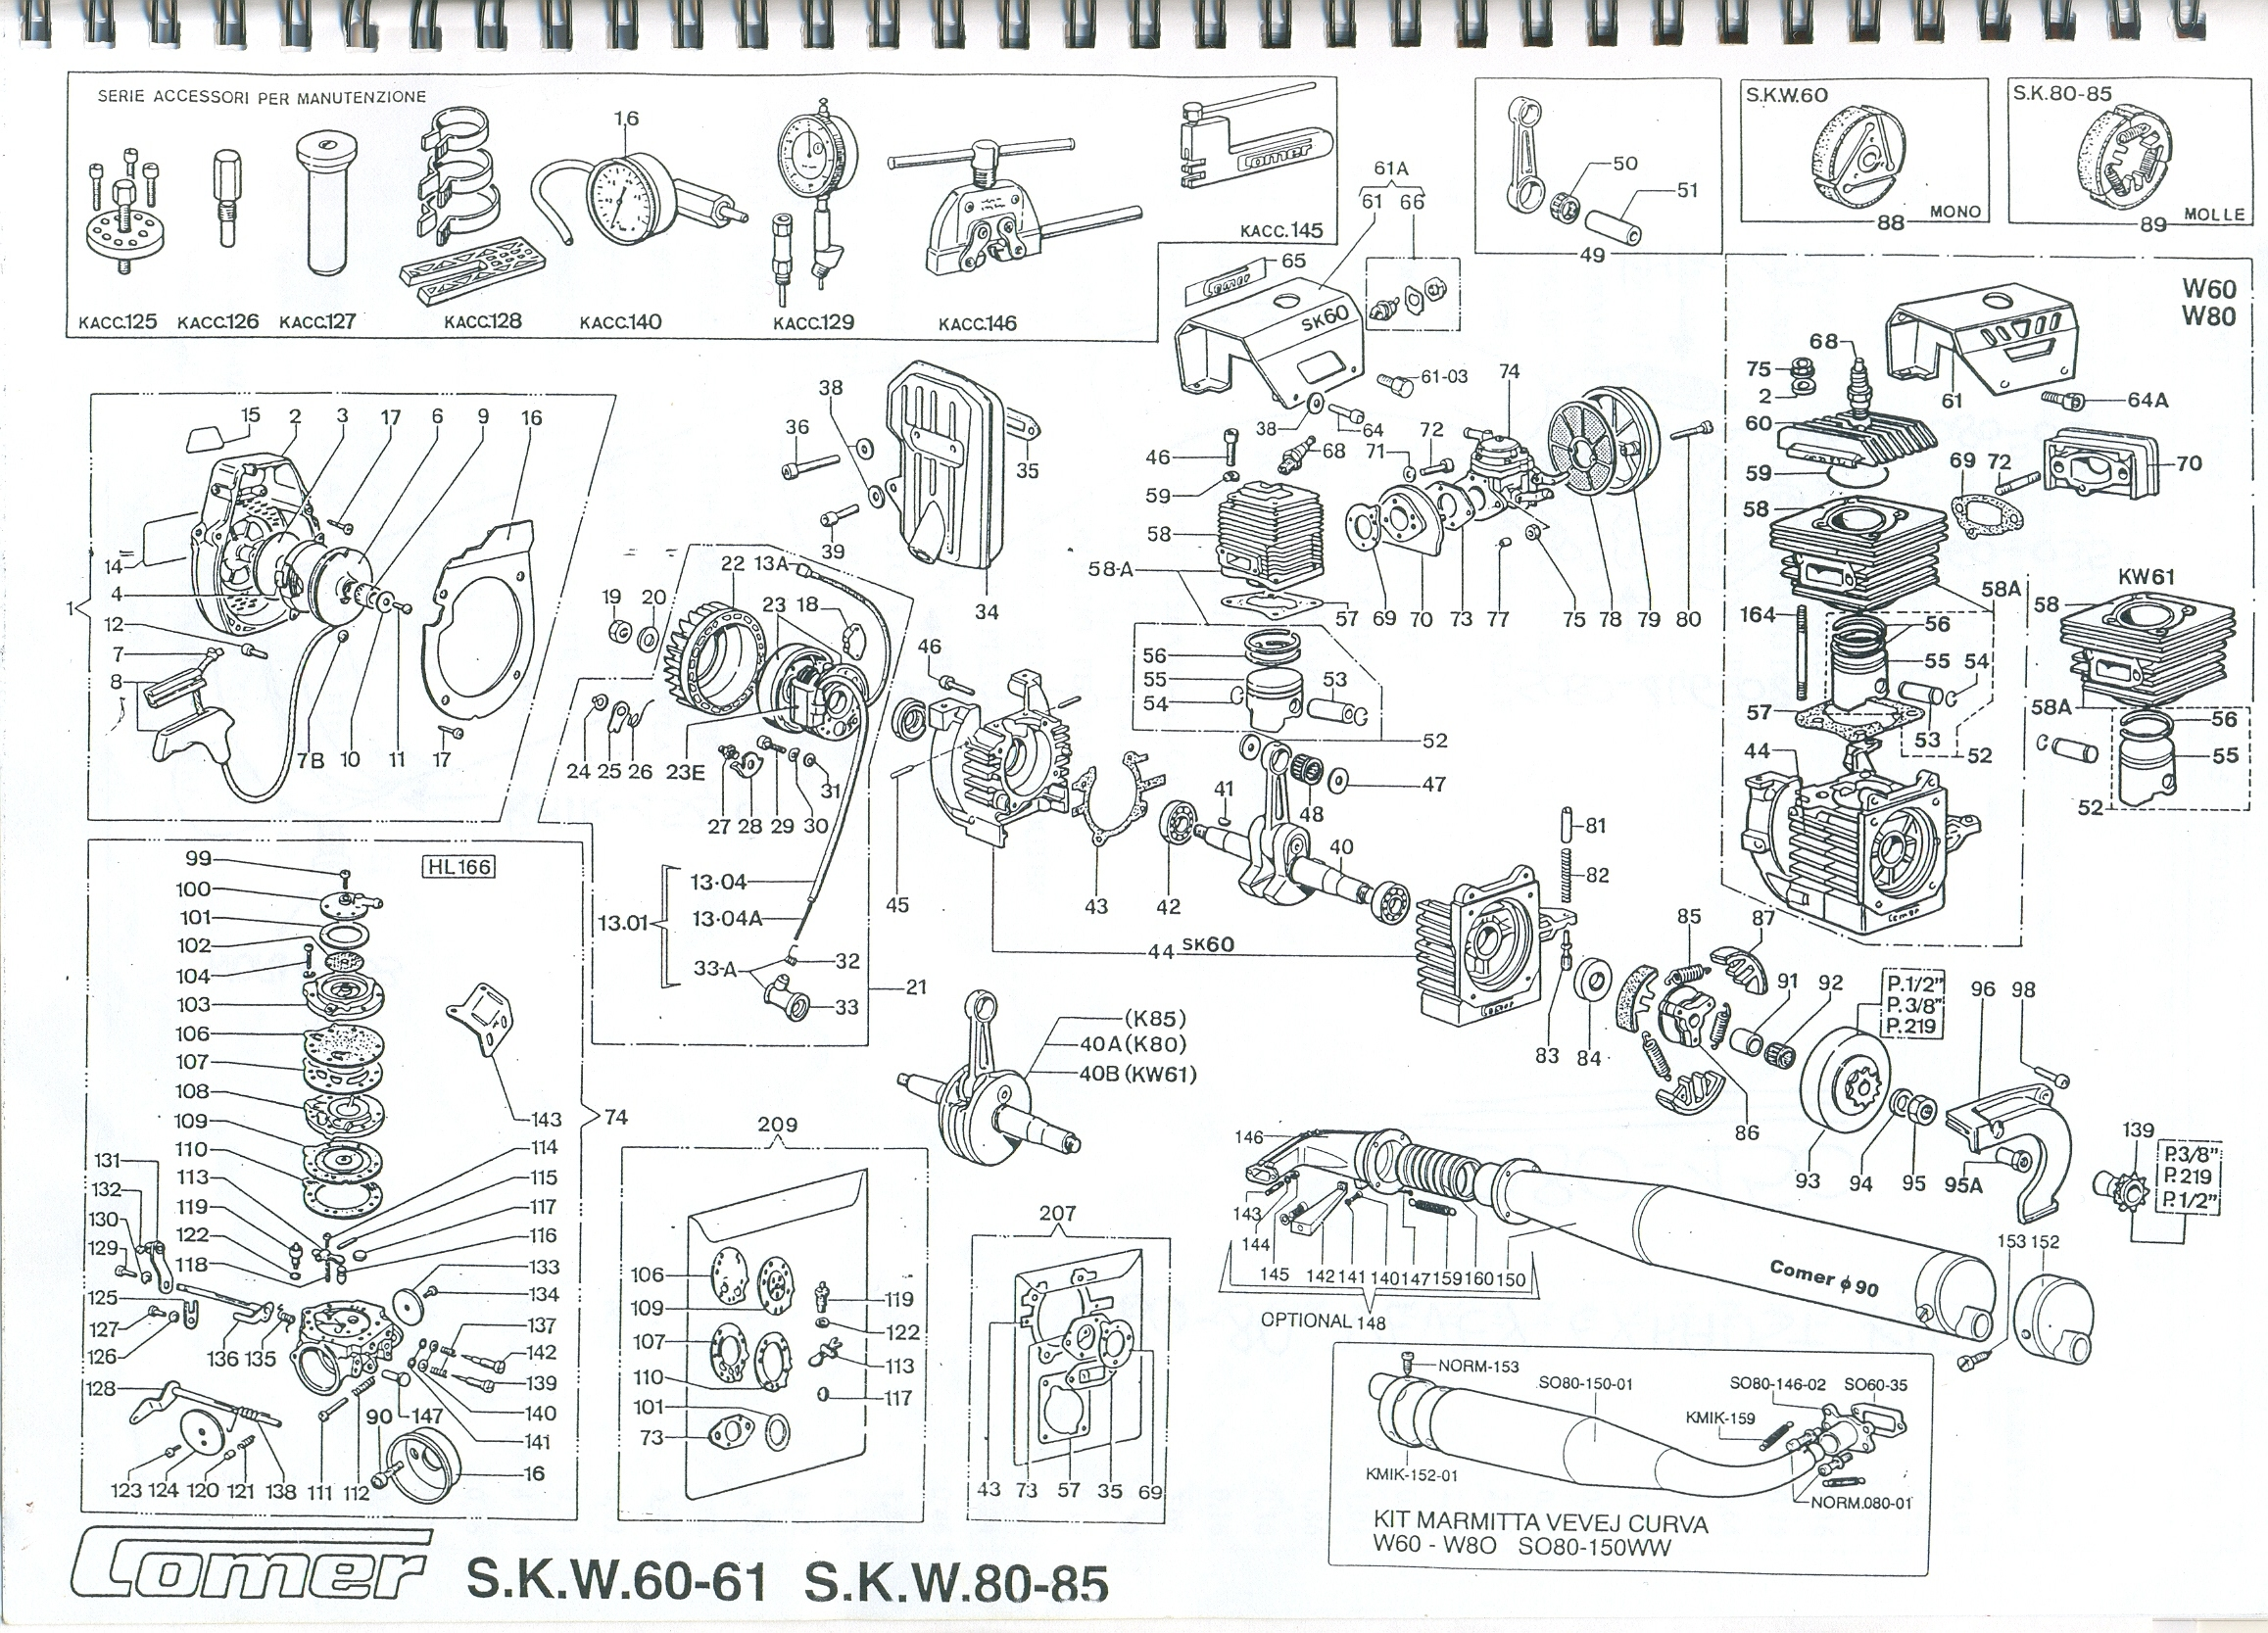 hight resolution of how can get full engine diagrams grabcad questions jet engines how they work ge jet engine diagram